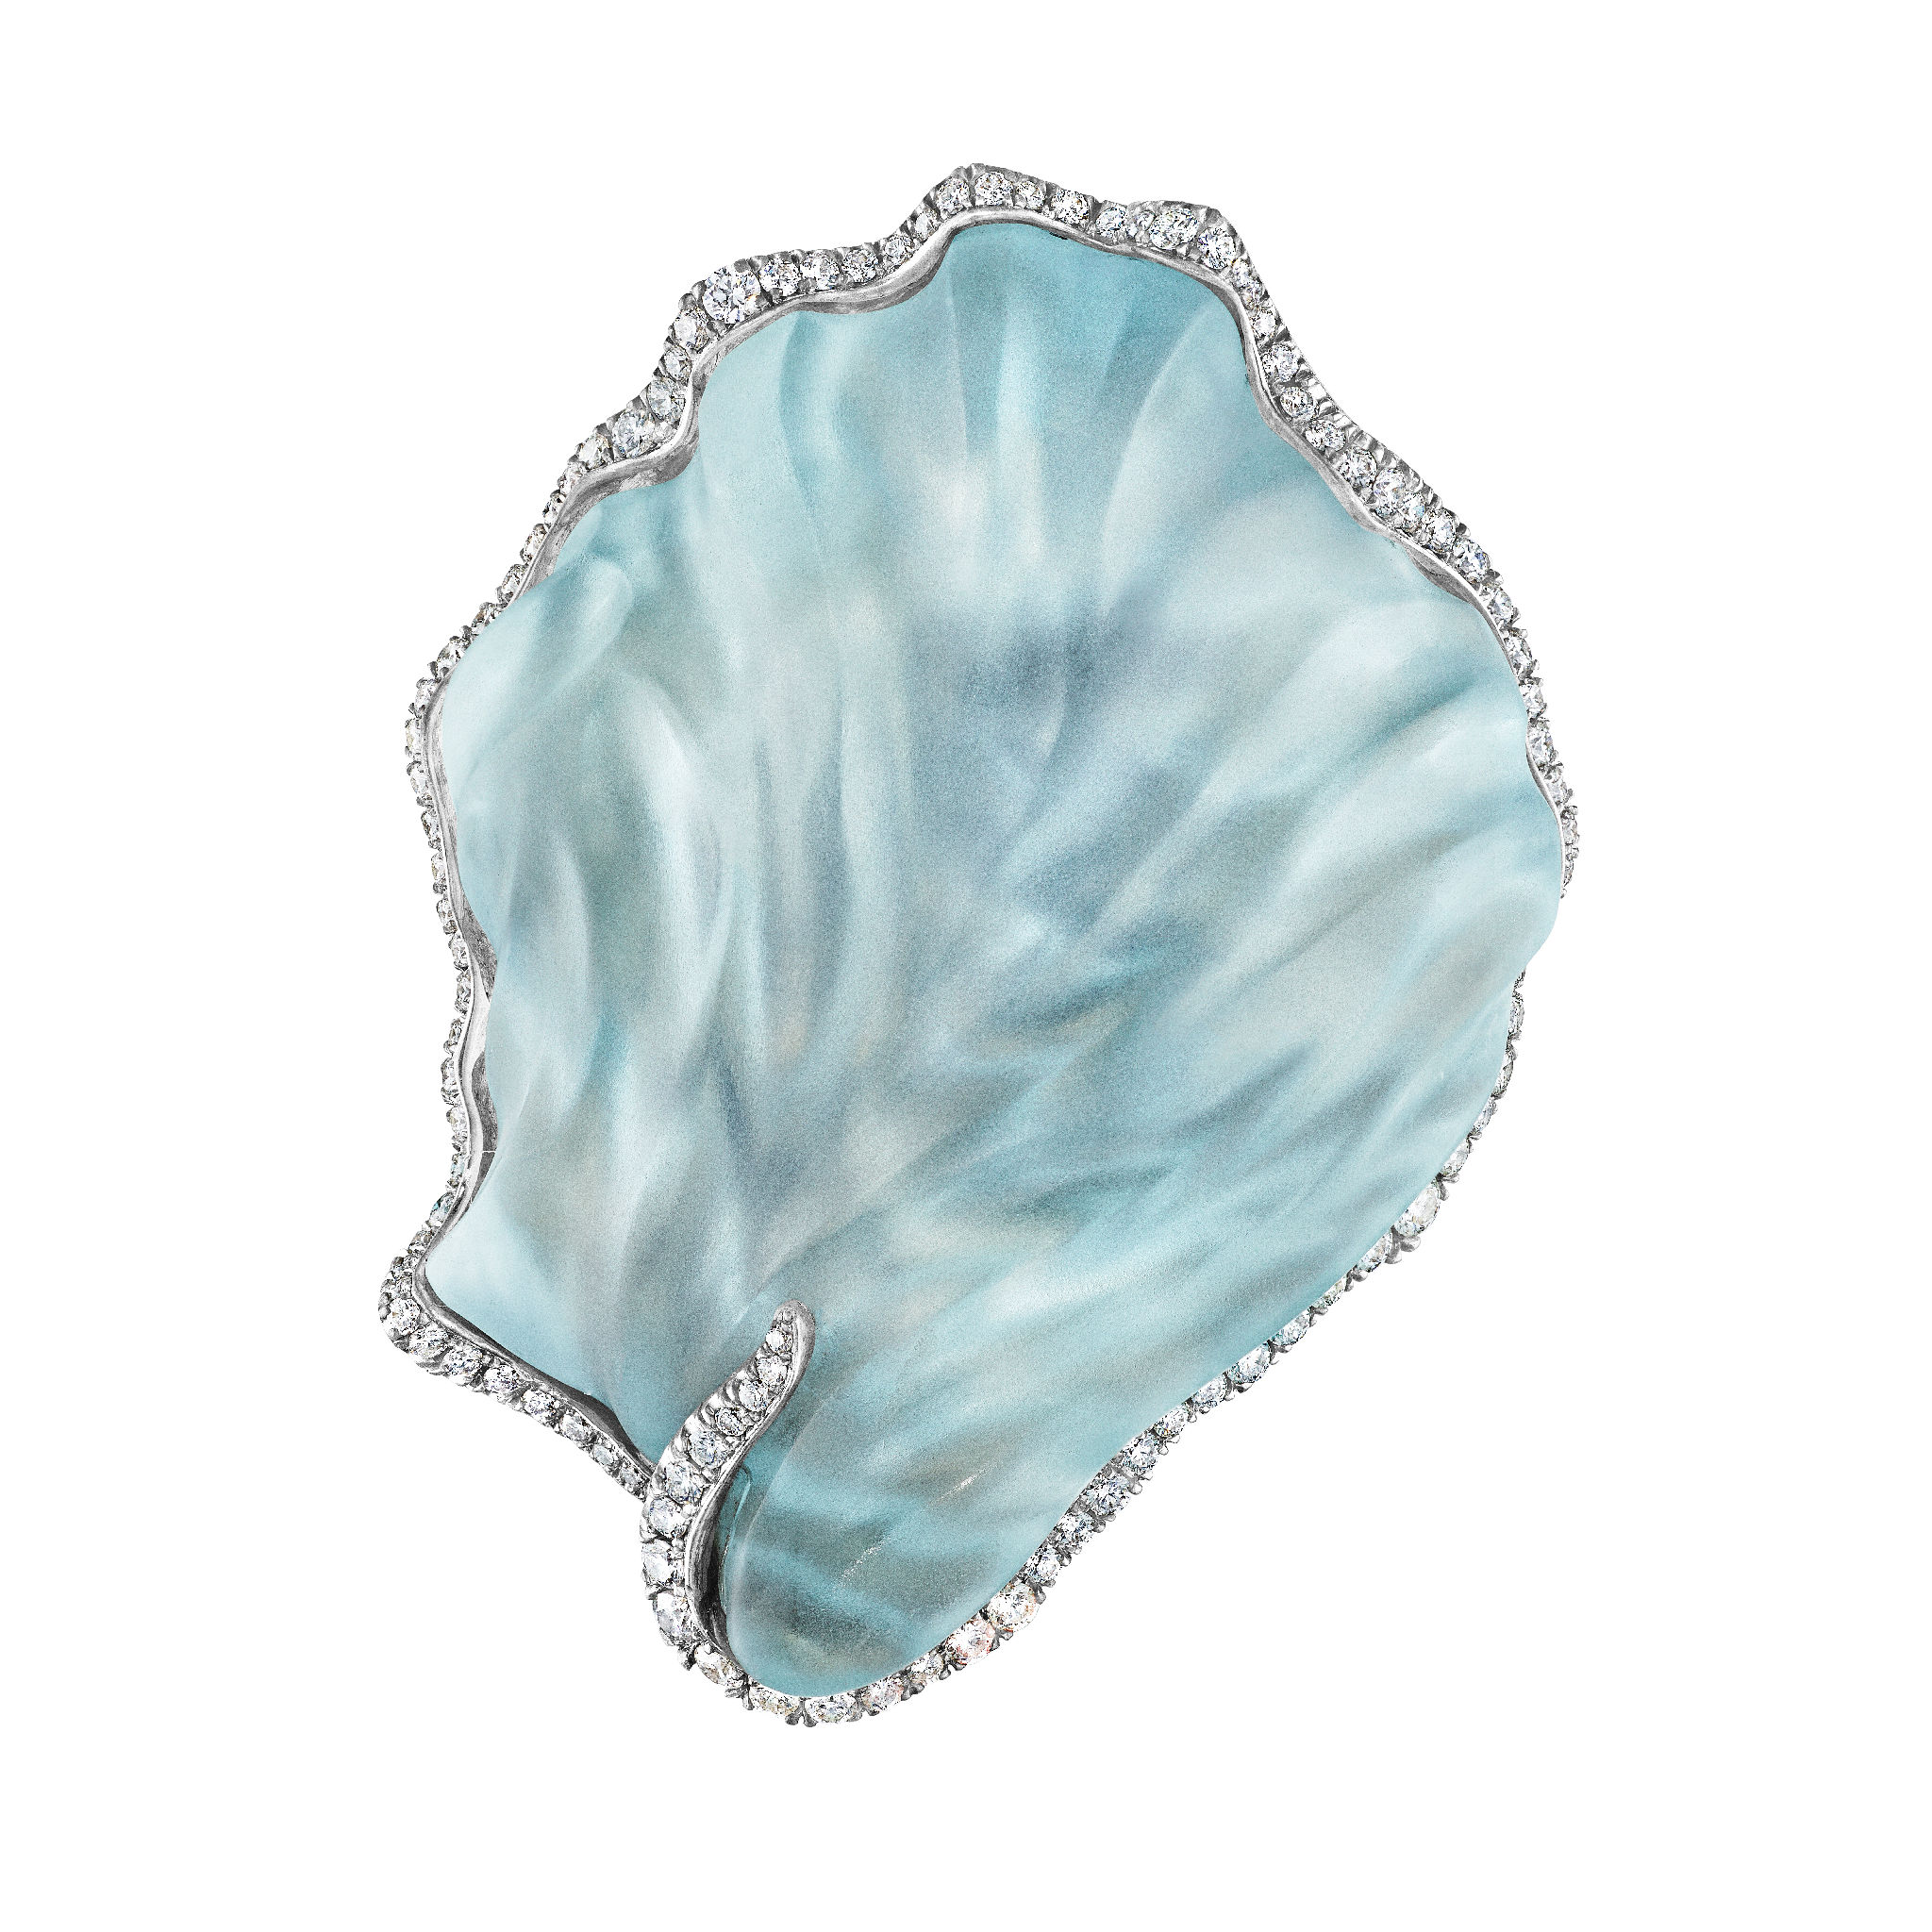 Aquamarine Shell Brooch Naomi Sarna 80 carat Aquamarine Hand-carved Diamonds-18k Gold